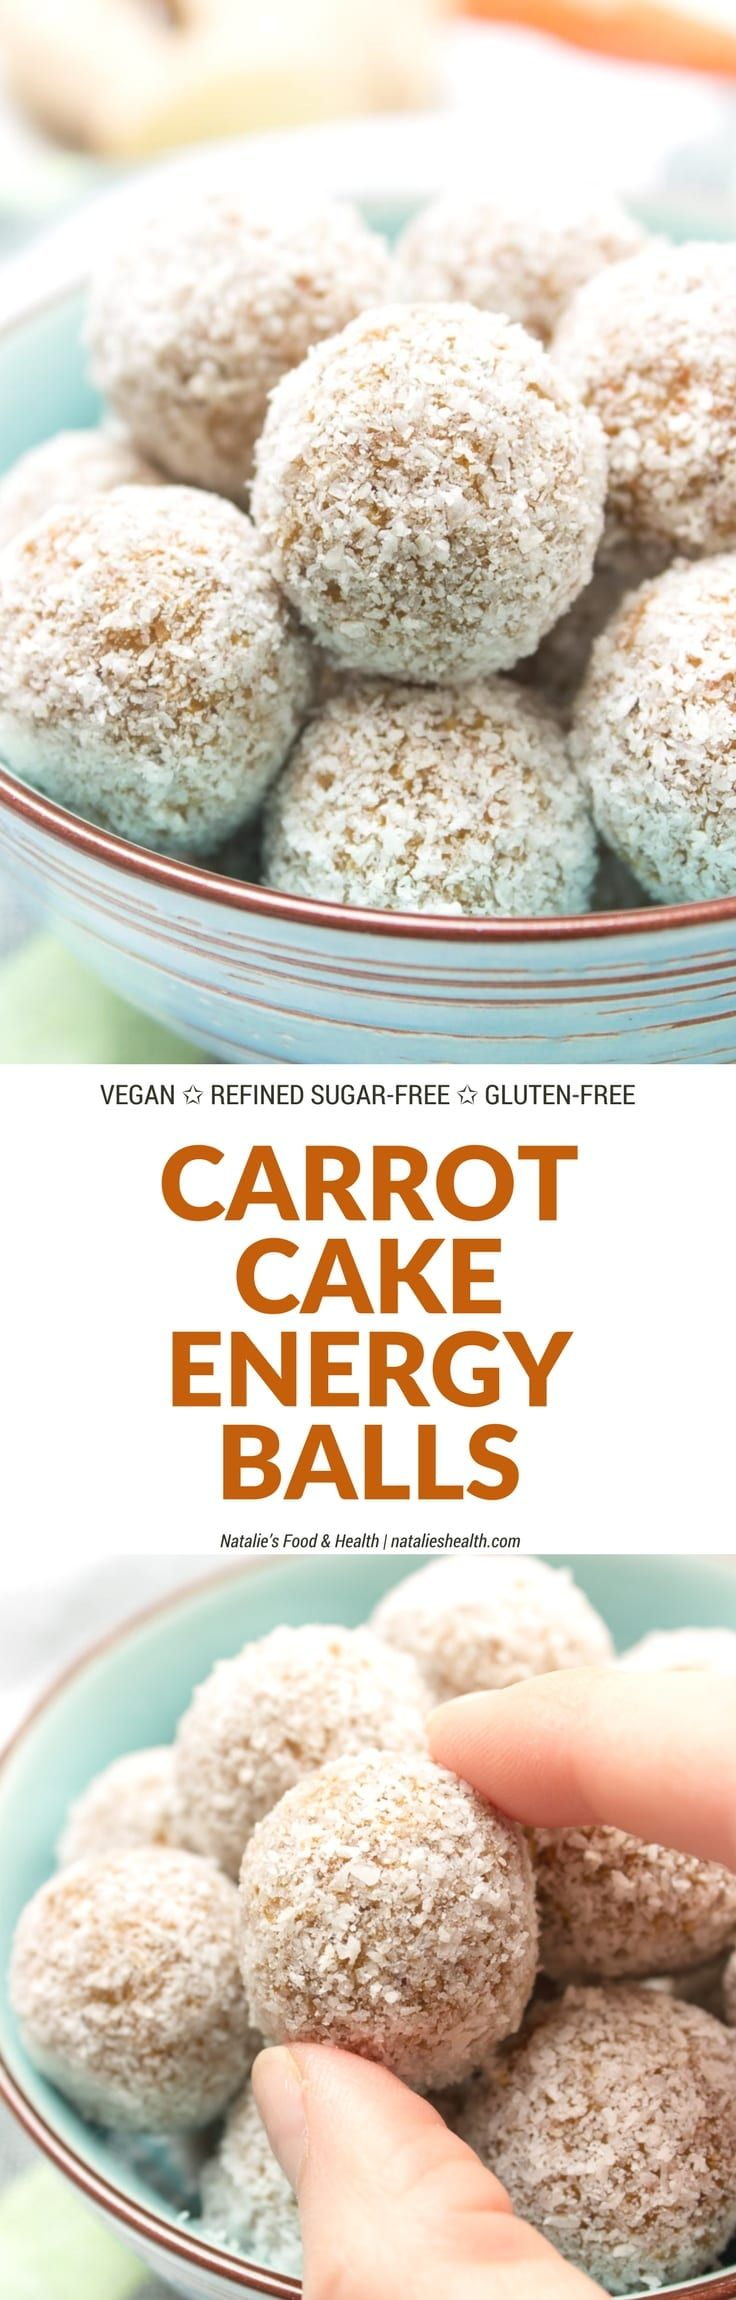 Raw no-bake Carrot Cake Energy Balls made with all HEALTHY ingredients. These yummy bites are refined sugar-free, gluten-free and vegan. Perfect snack, a post-workout snack or simple dessert. |  |